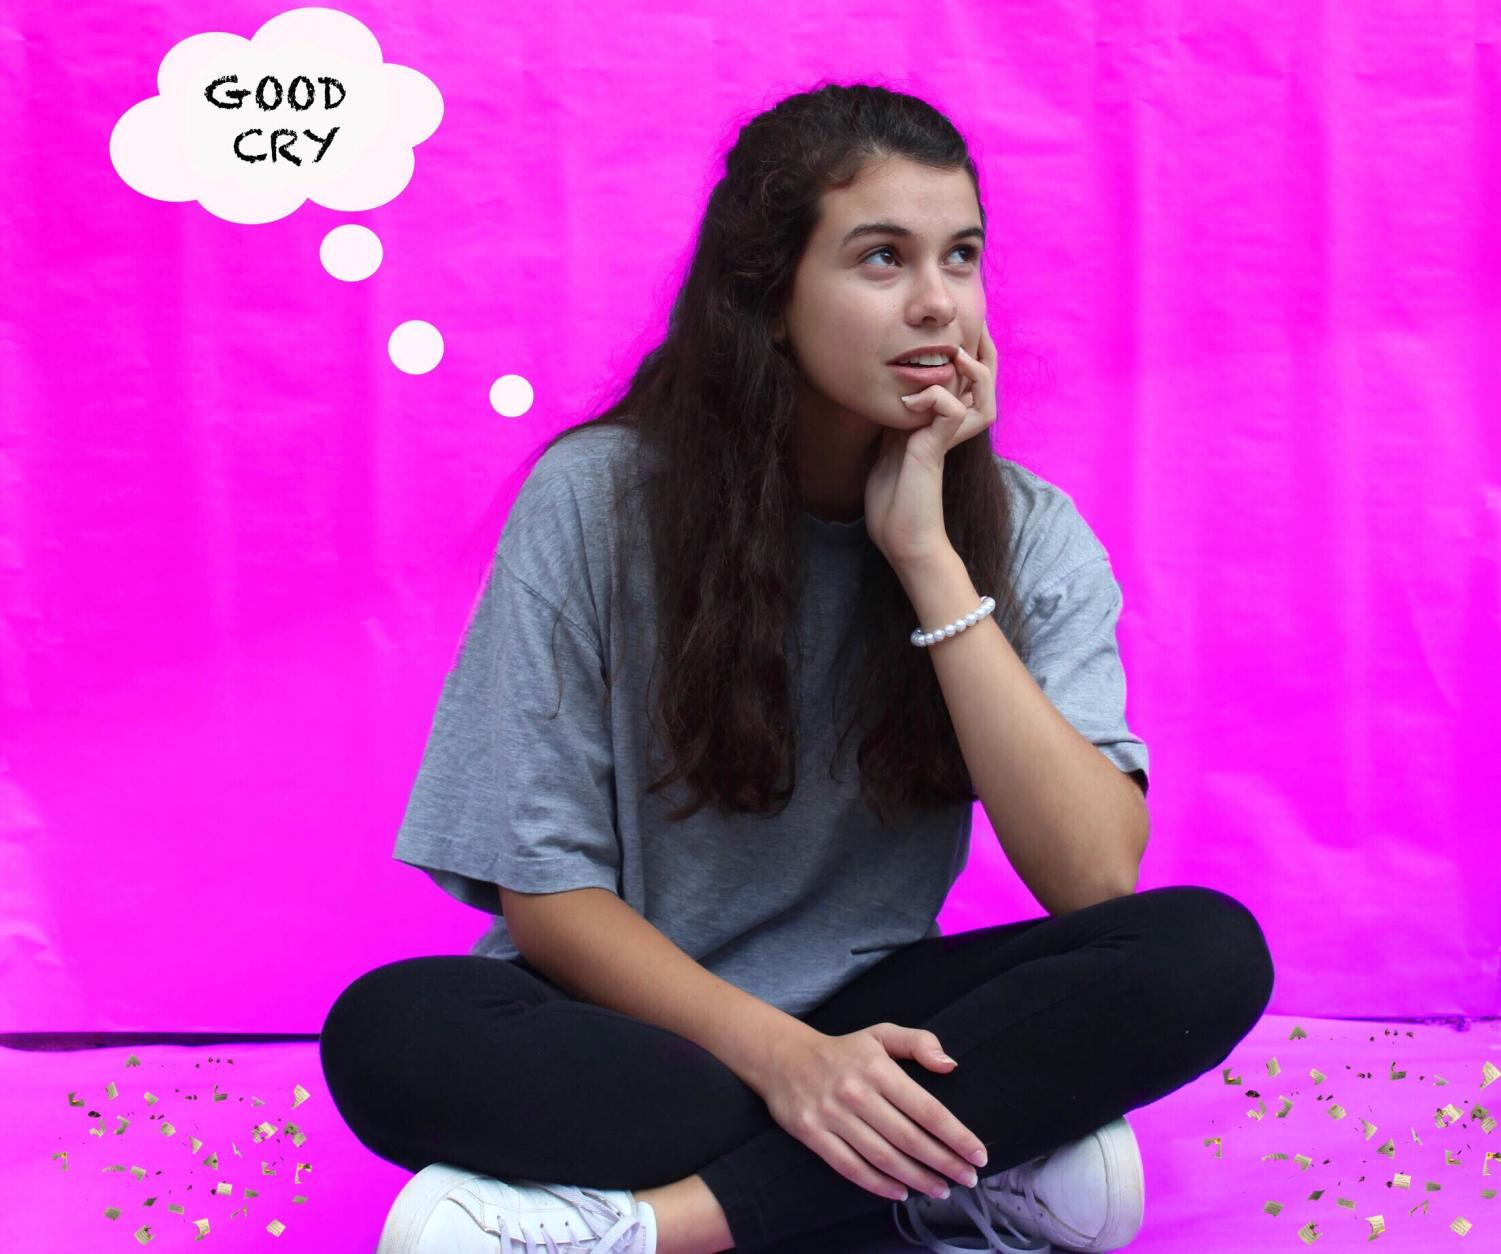 """Junior Katie Word reenacts the cover of Noah Cyrus's first EP, Good Cry. """"The album cover is aesthetically pleasing and the music present in the EP fills me with a type of emotion that I cannot express. I can feel that the music is about Lil Xan, however I personally think Miley Cyrus is better,"""" junior Katie Word said."""